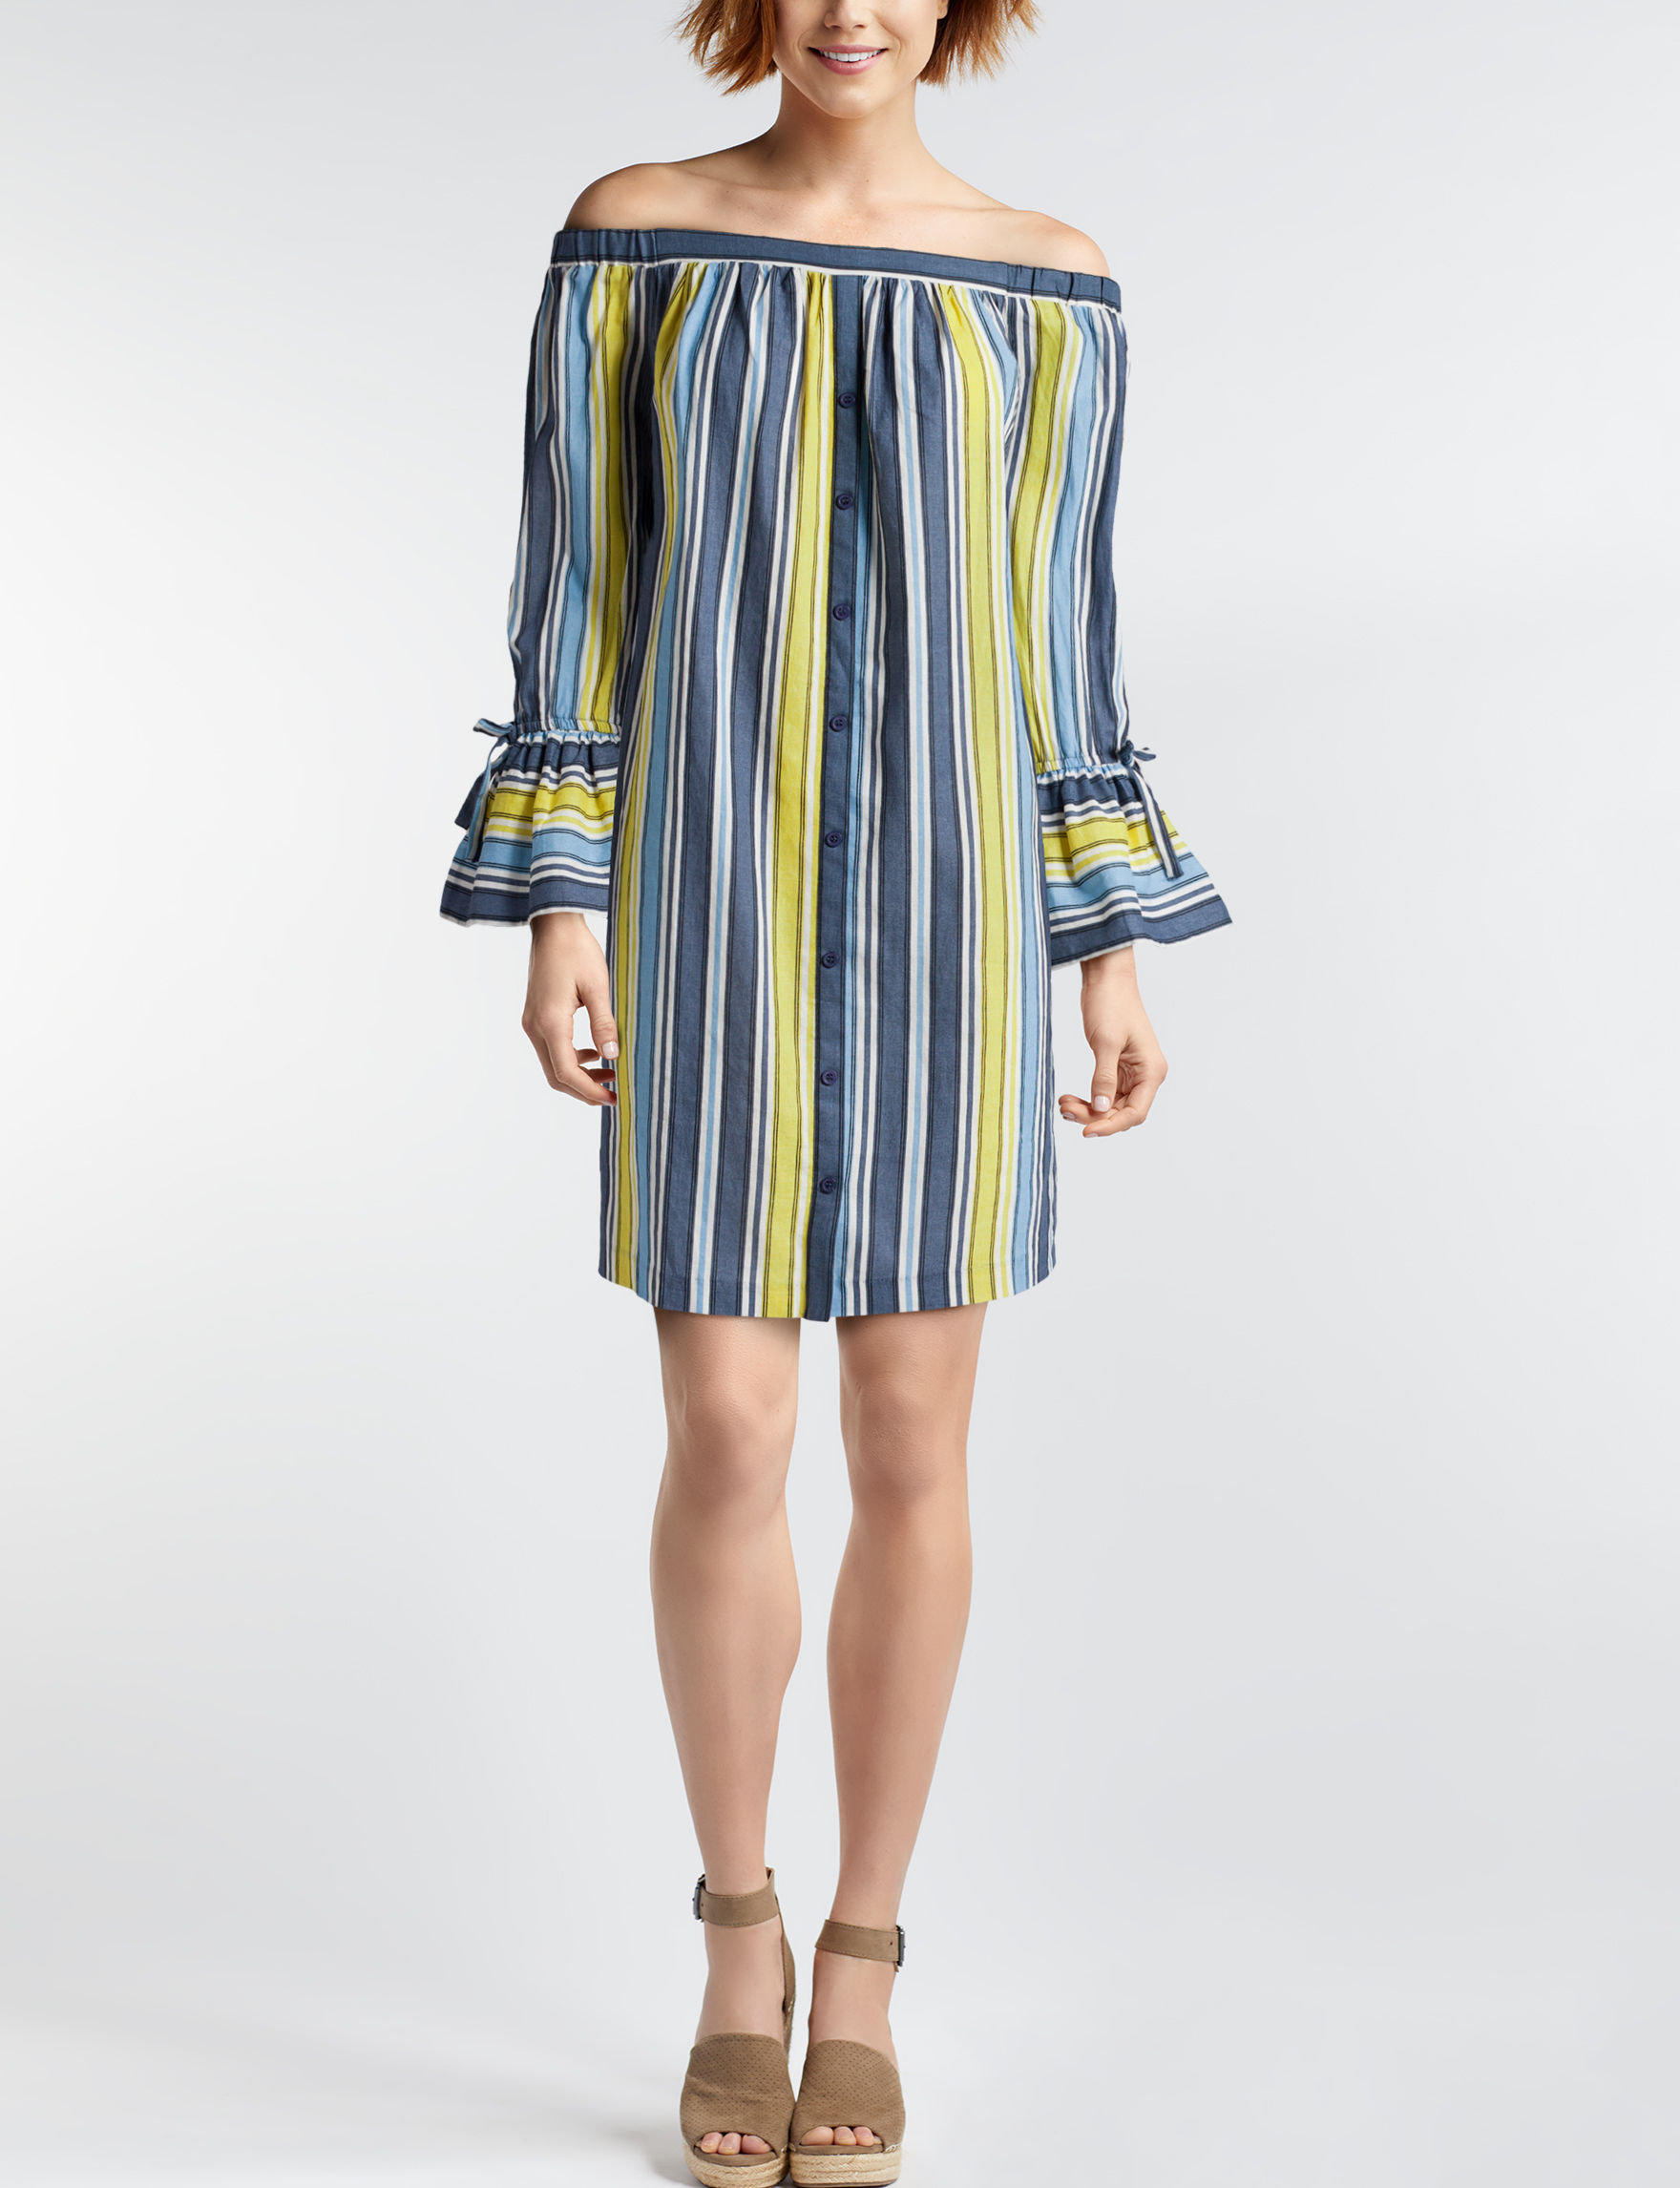 Beige by ECI Yellow / Blue Everyday & Casual Shift Dresses